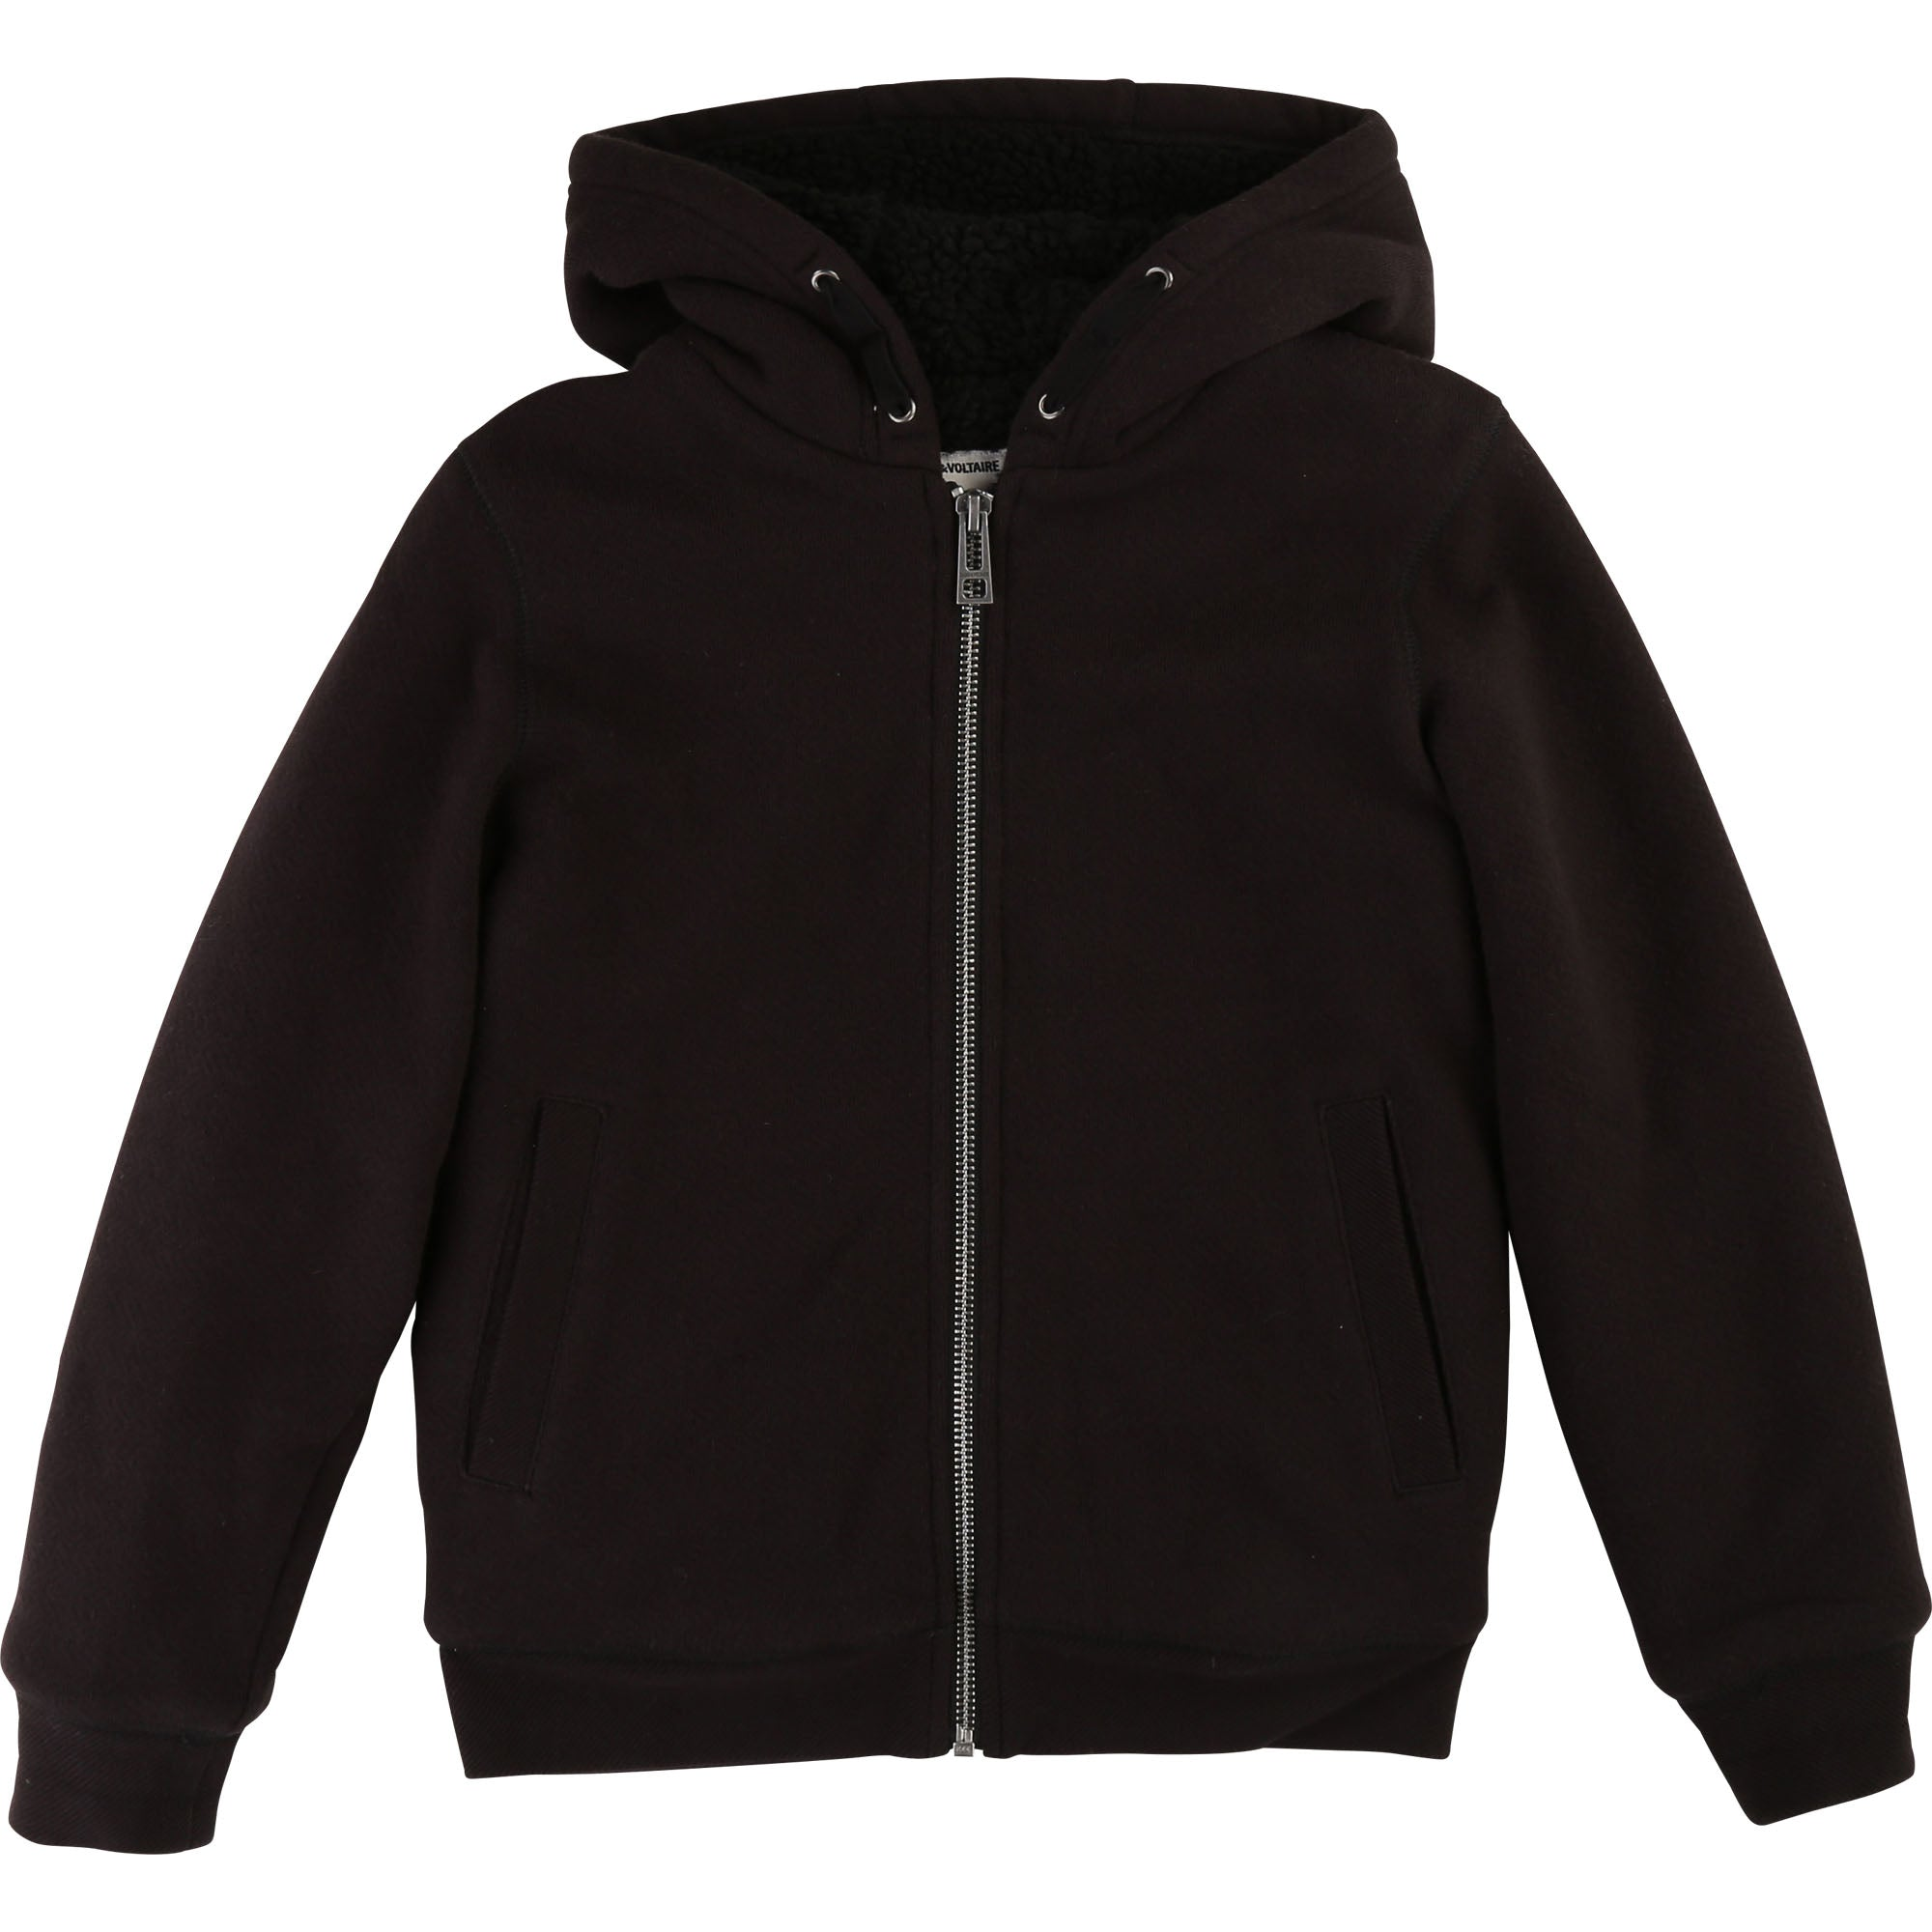 Boys Black Hooded Top